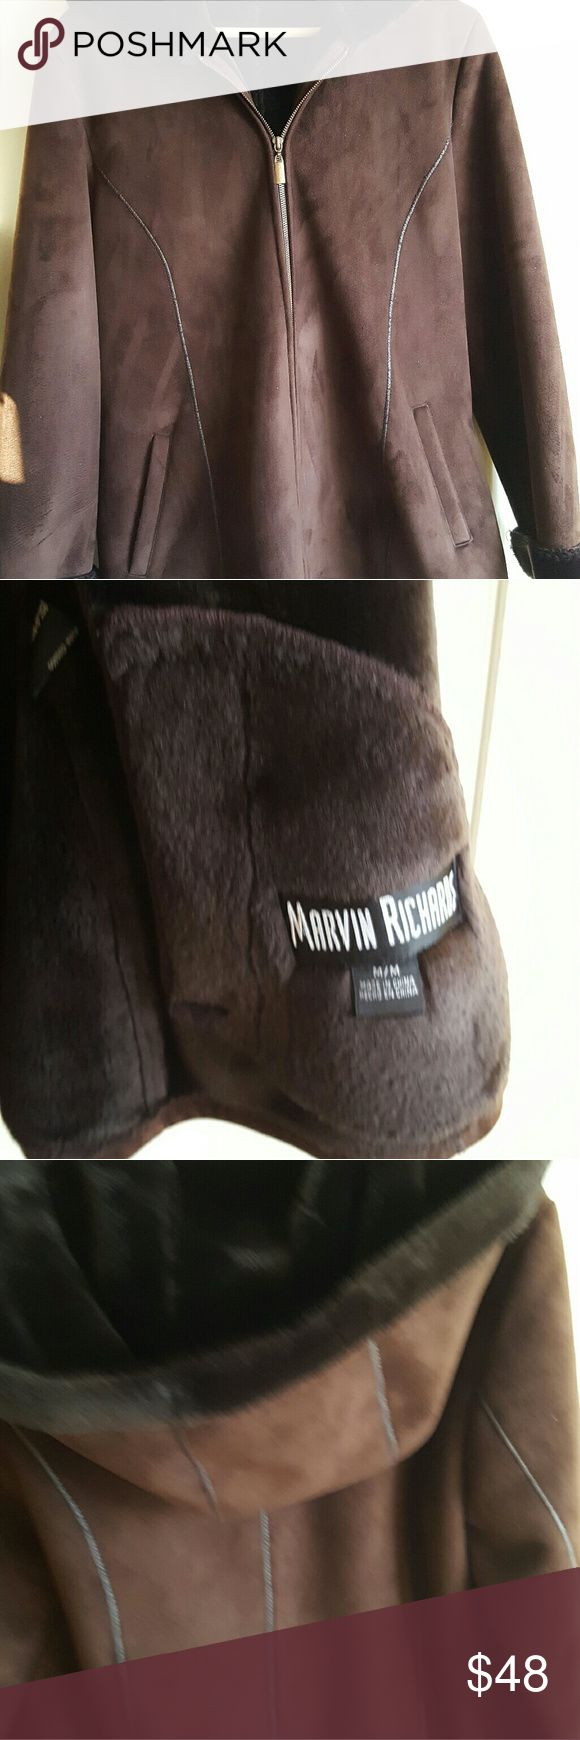 Marvin Richards Ladies Hooded Suede Coat Jacket Brown color suede material zipper in the front ,hooded, tow front pocket , size medium  measurement: coat length 28 inch Armpit to Armpit  21 inch   Sleeve length 25 inch.  no stain or smell in excellent condition very soft and comfy jacket Marvin Richards Jackets & Coats